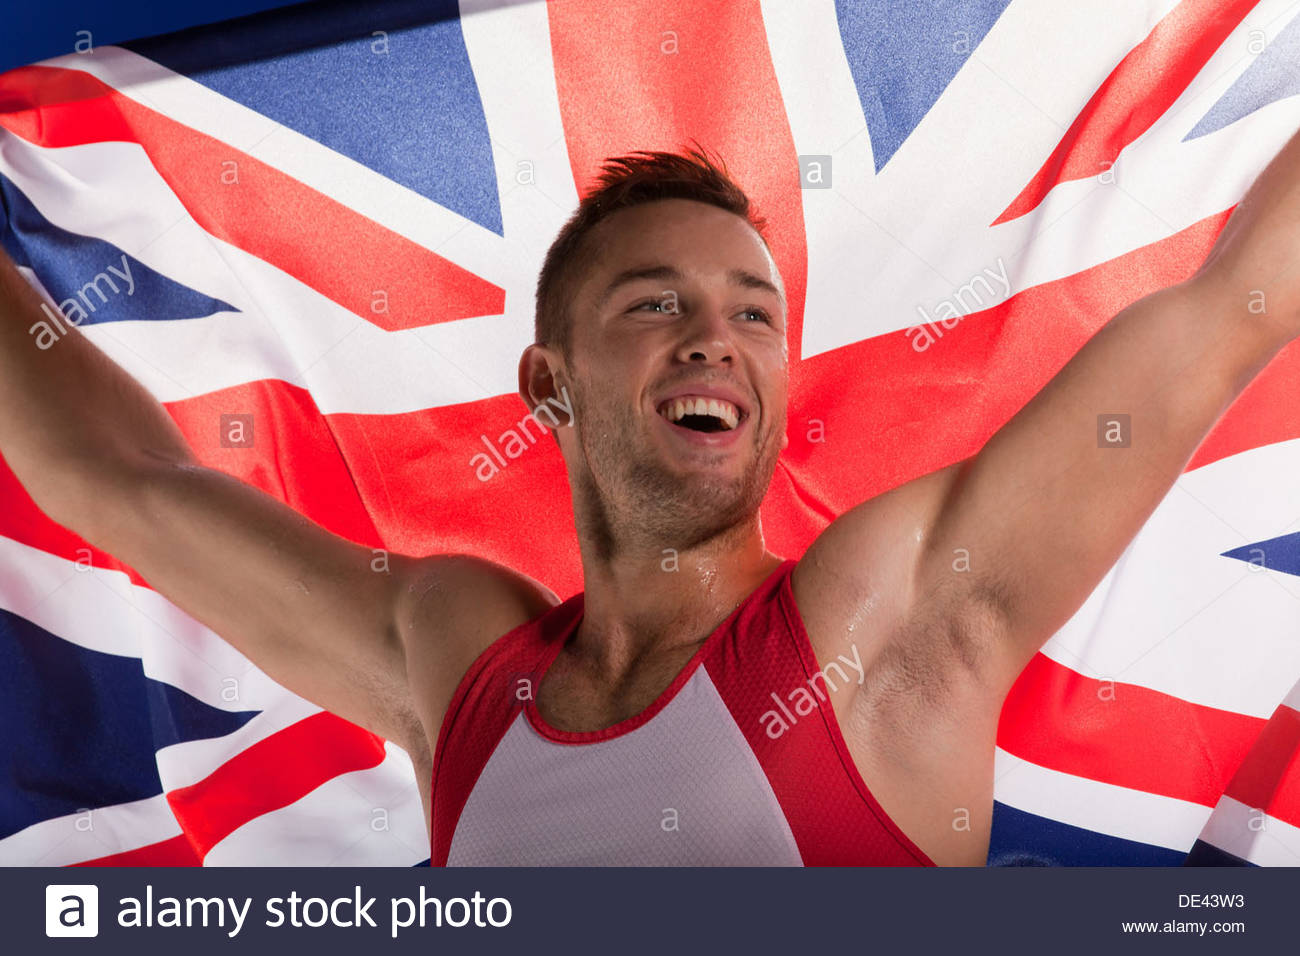 Athlete carrying Union Jack flag - Stock Image